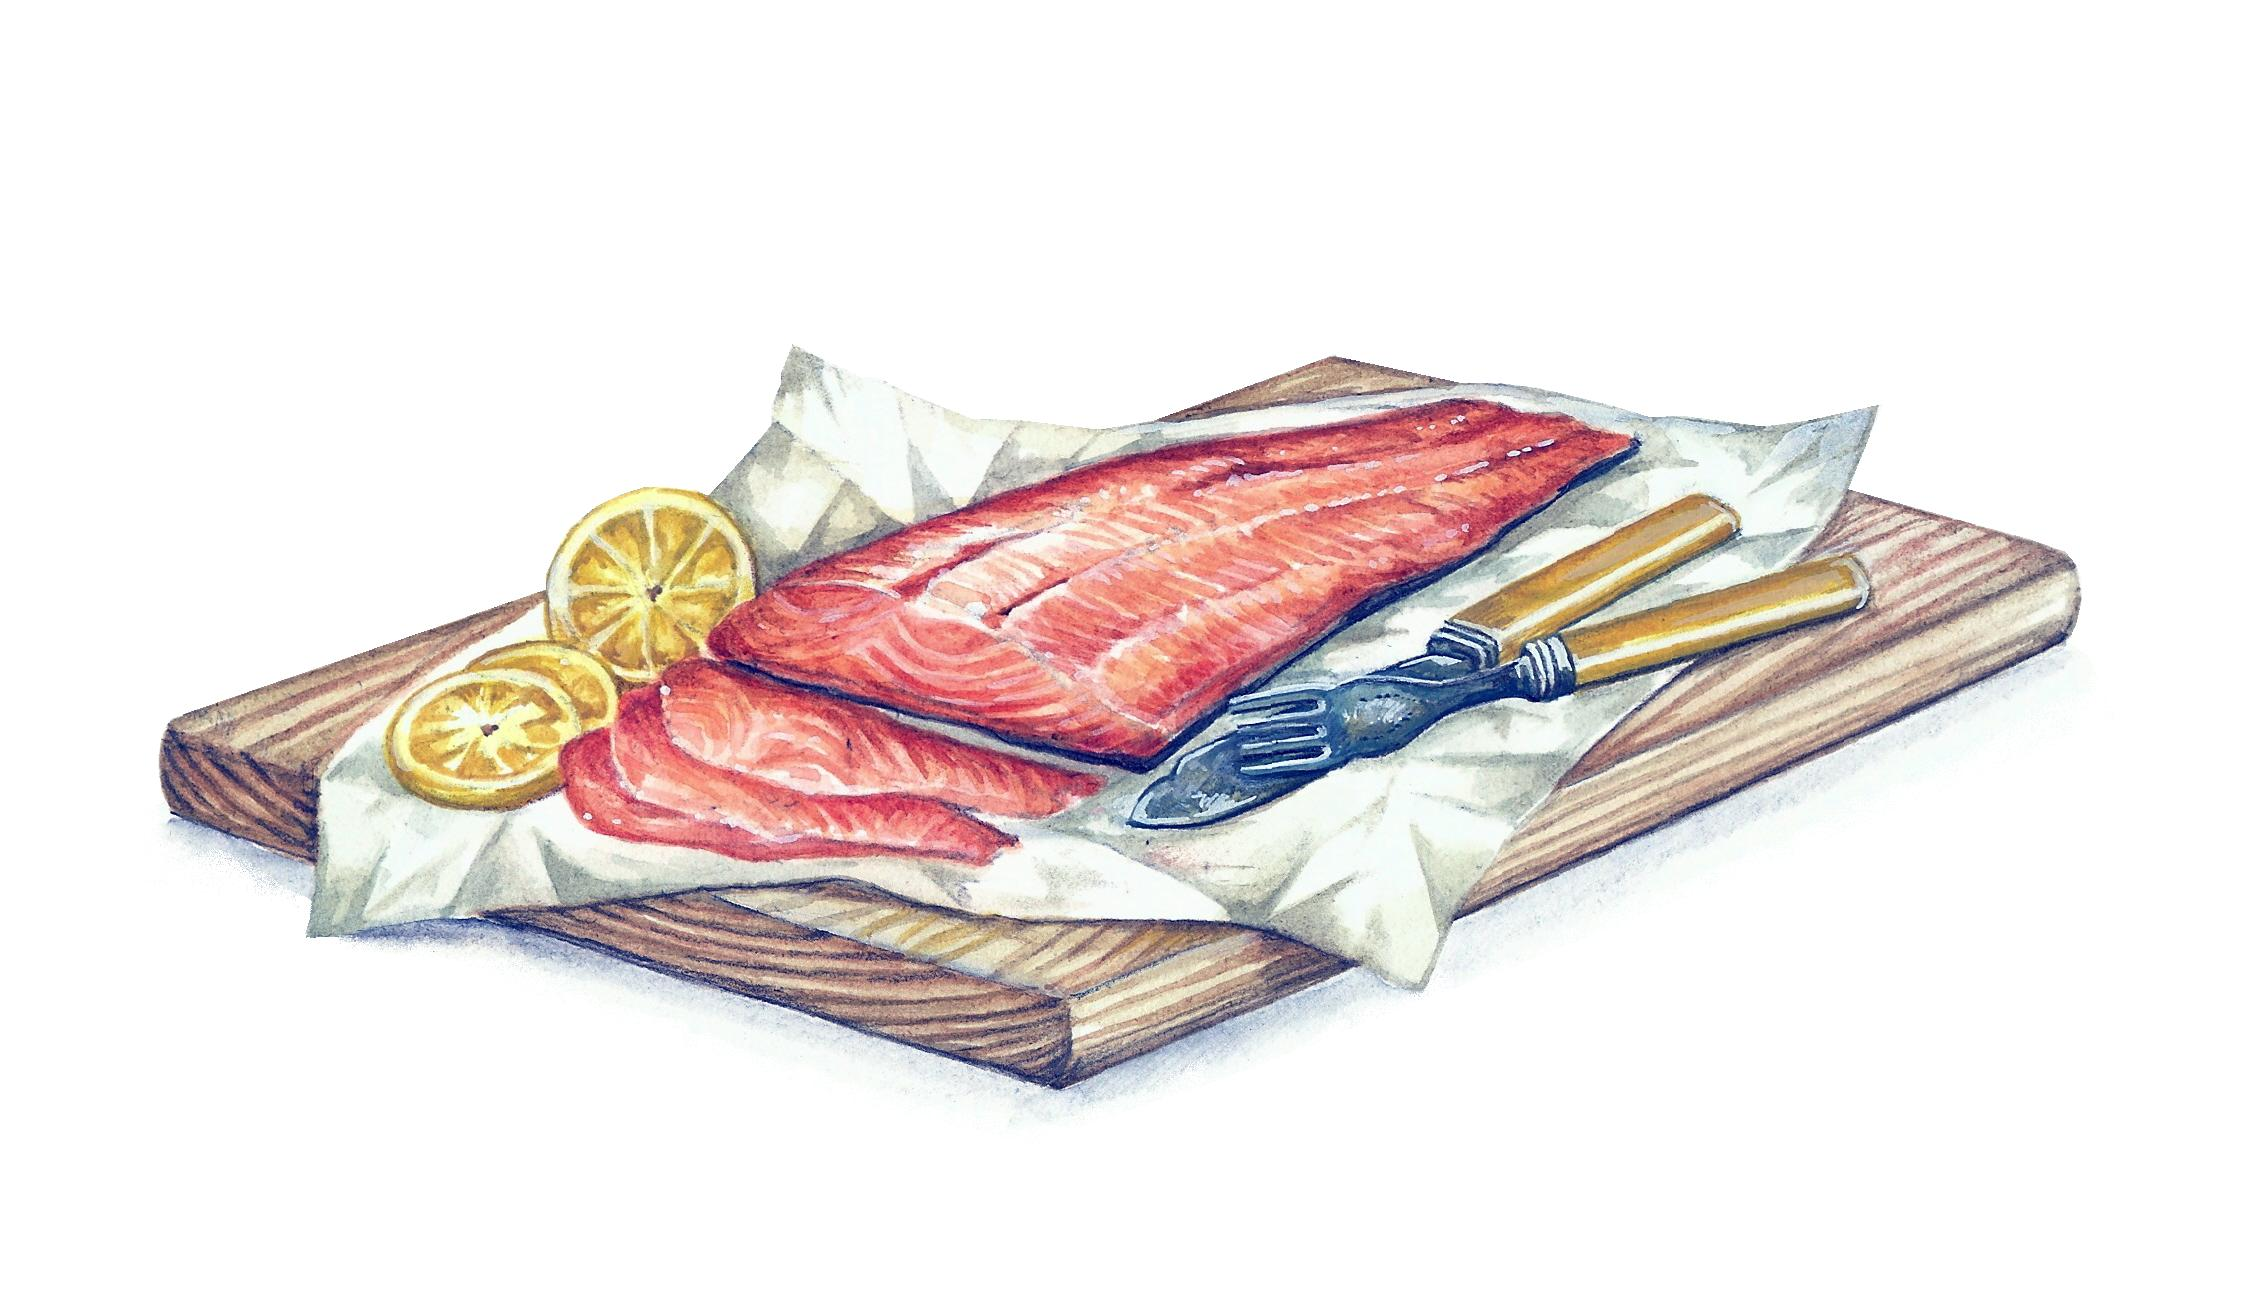 Welsh Salmon Artwork